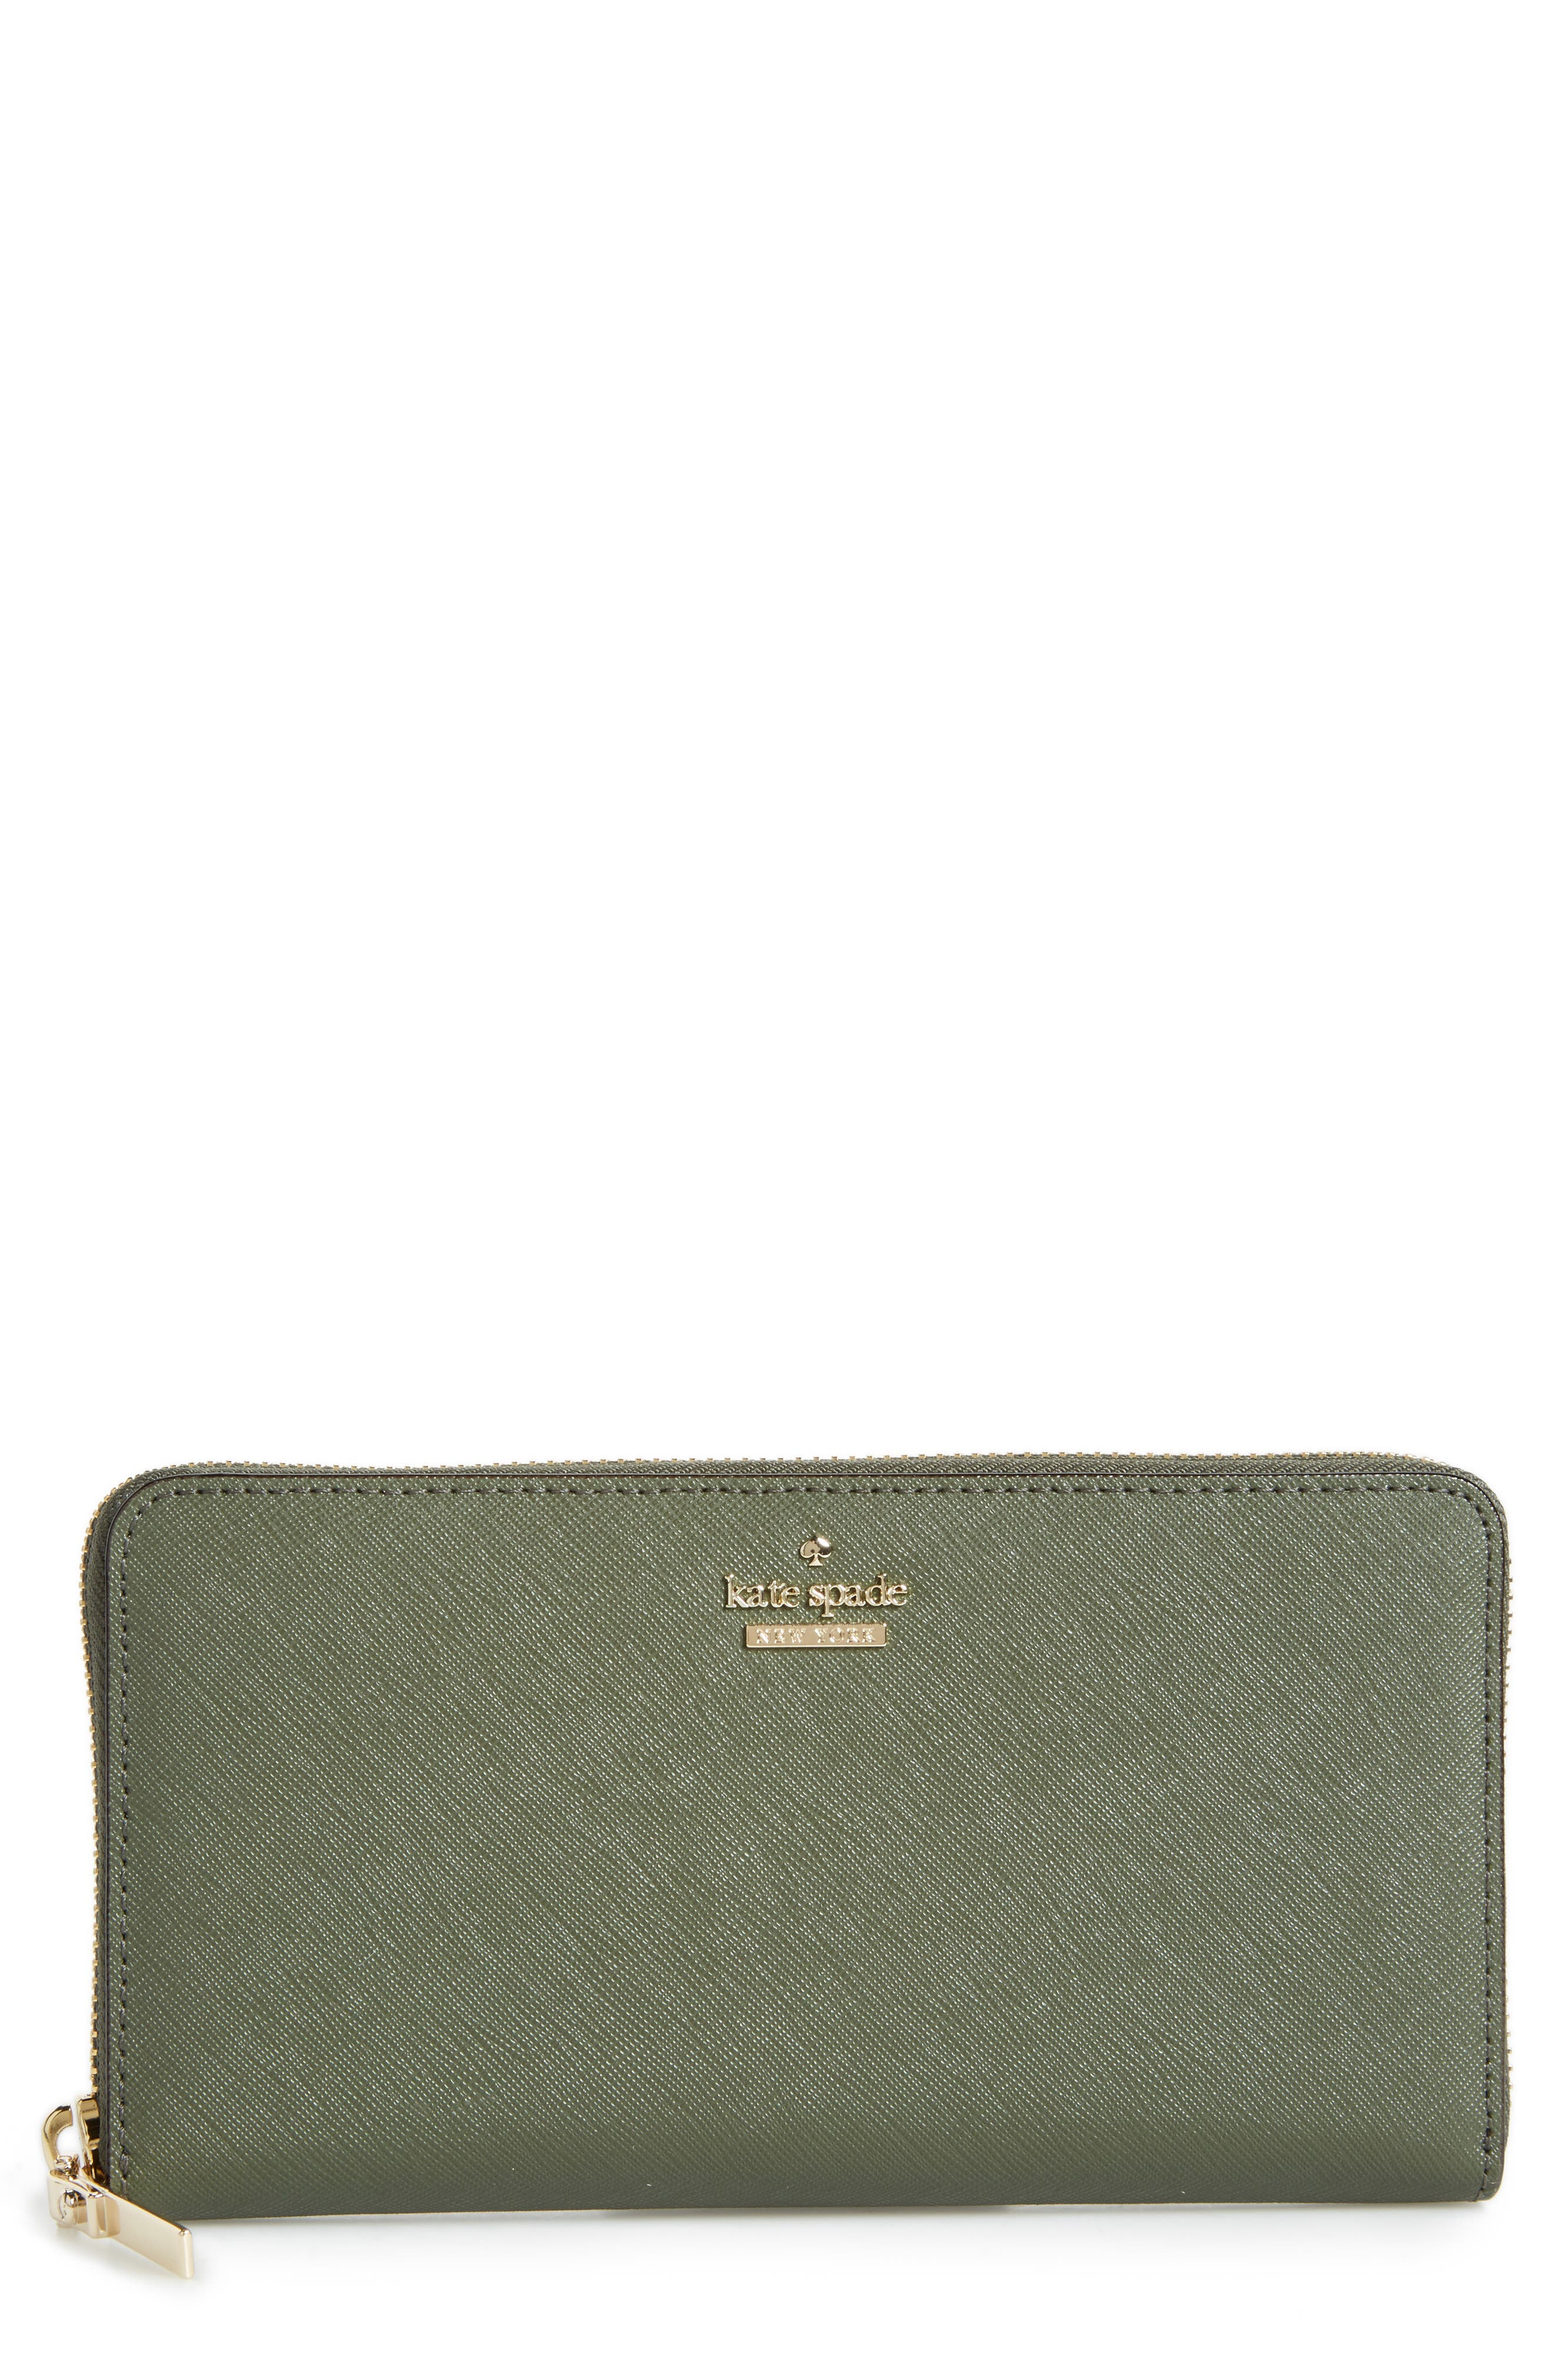 'cameron street - lacey' leather wallet,                         Main,                         color,